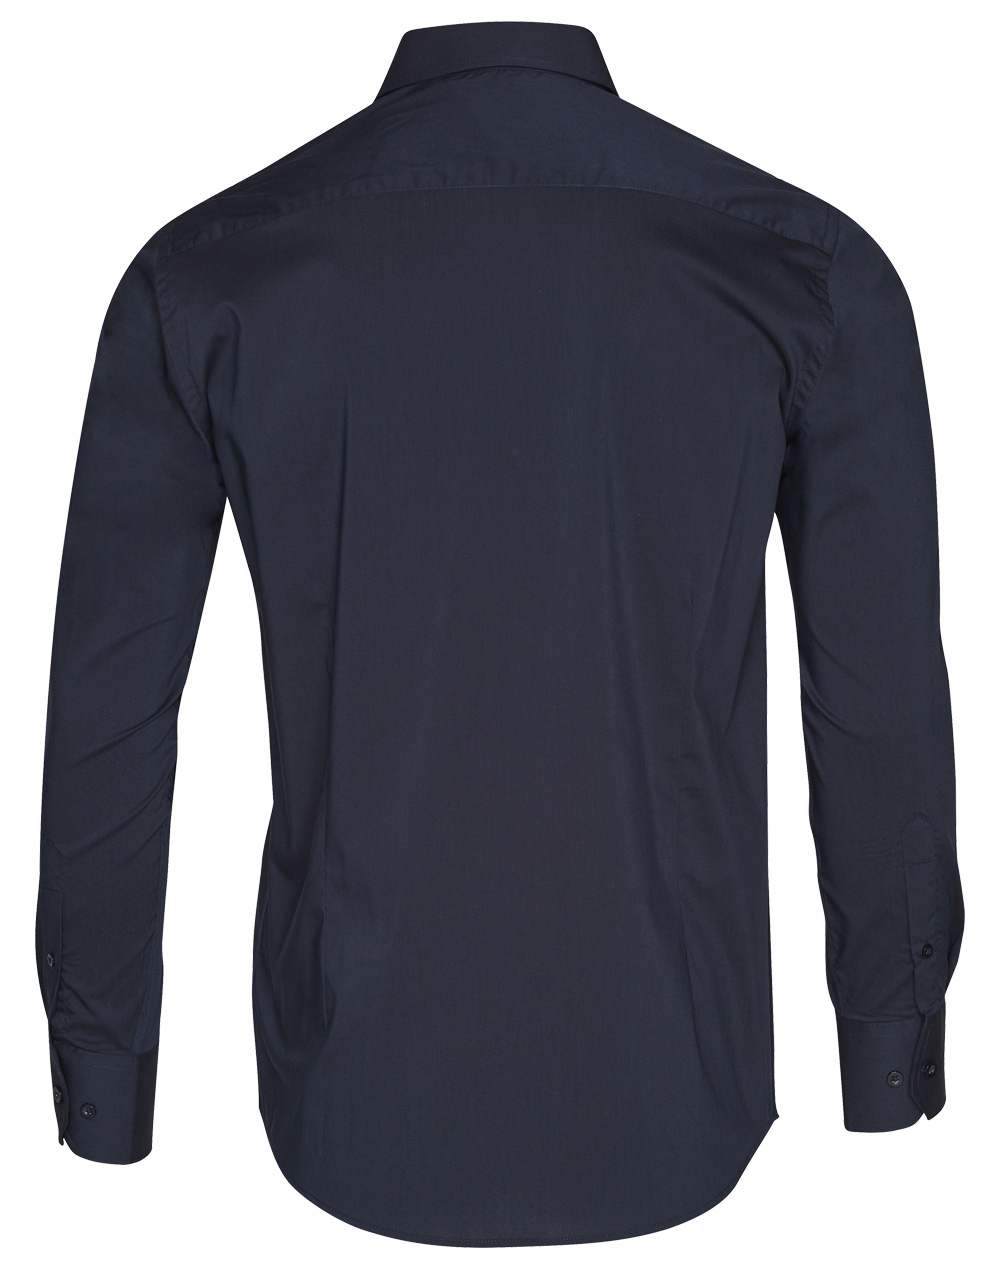 https://ws-imgs.s3-ap-southeast-1.amazonaws.com/BUSINESSSHIRTS/BS08L_Navy_Back.jpg